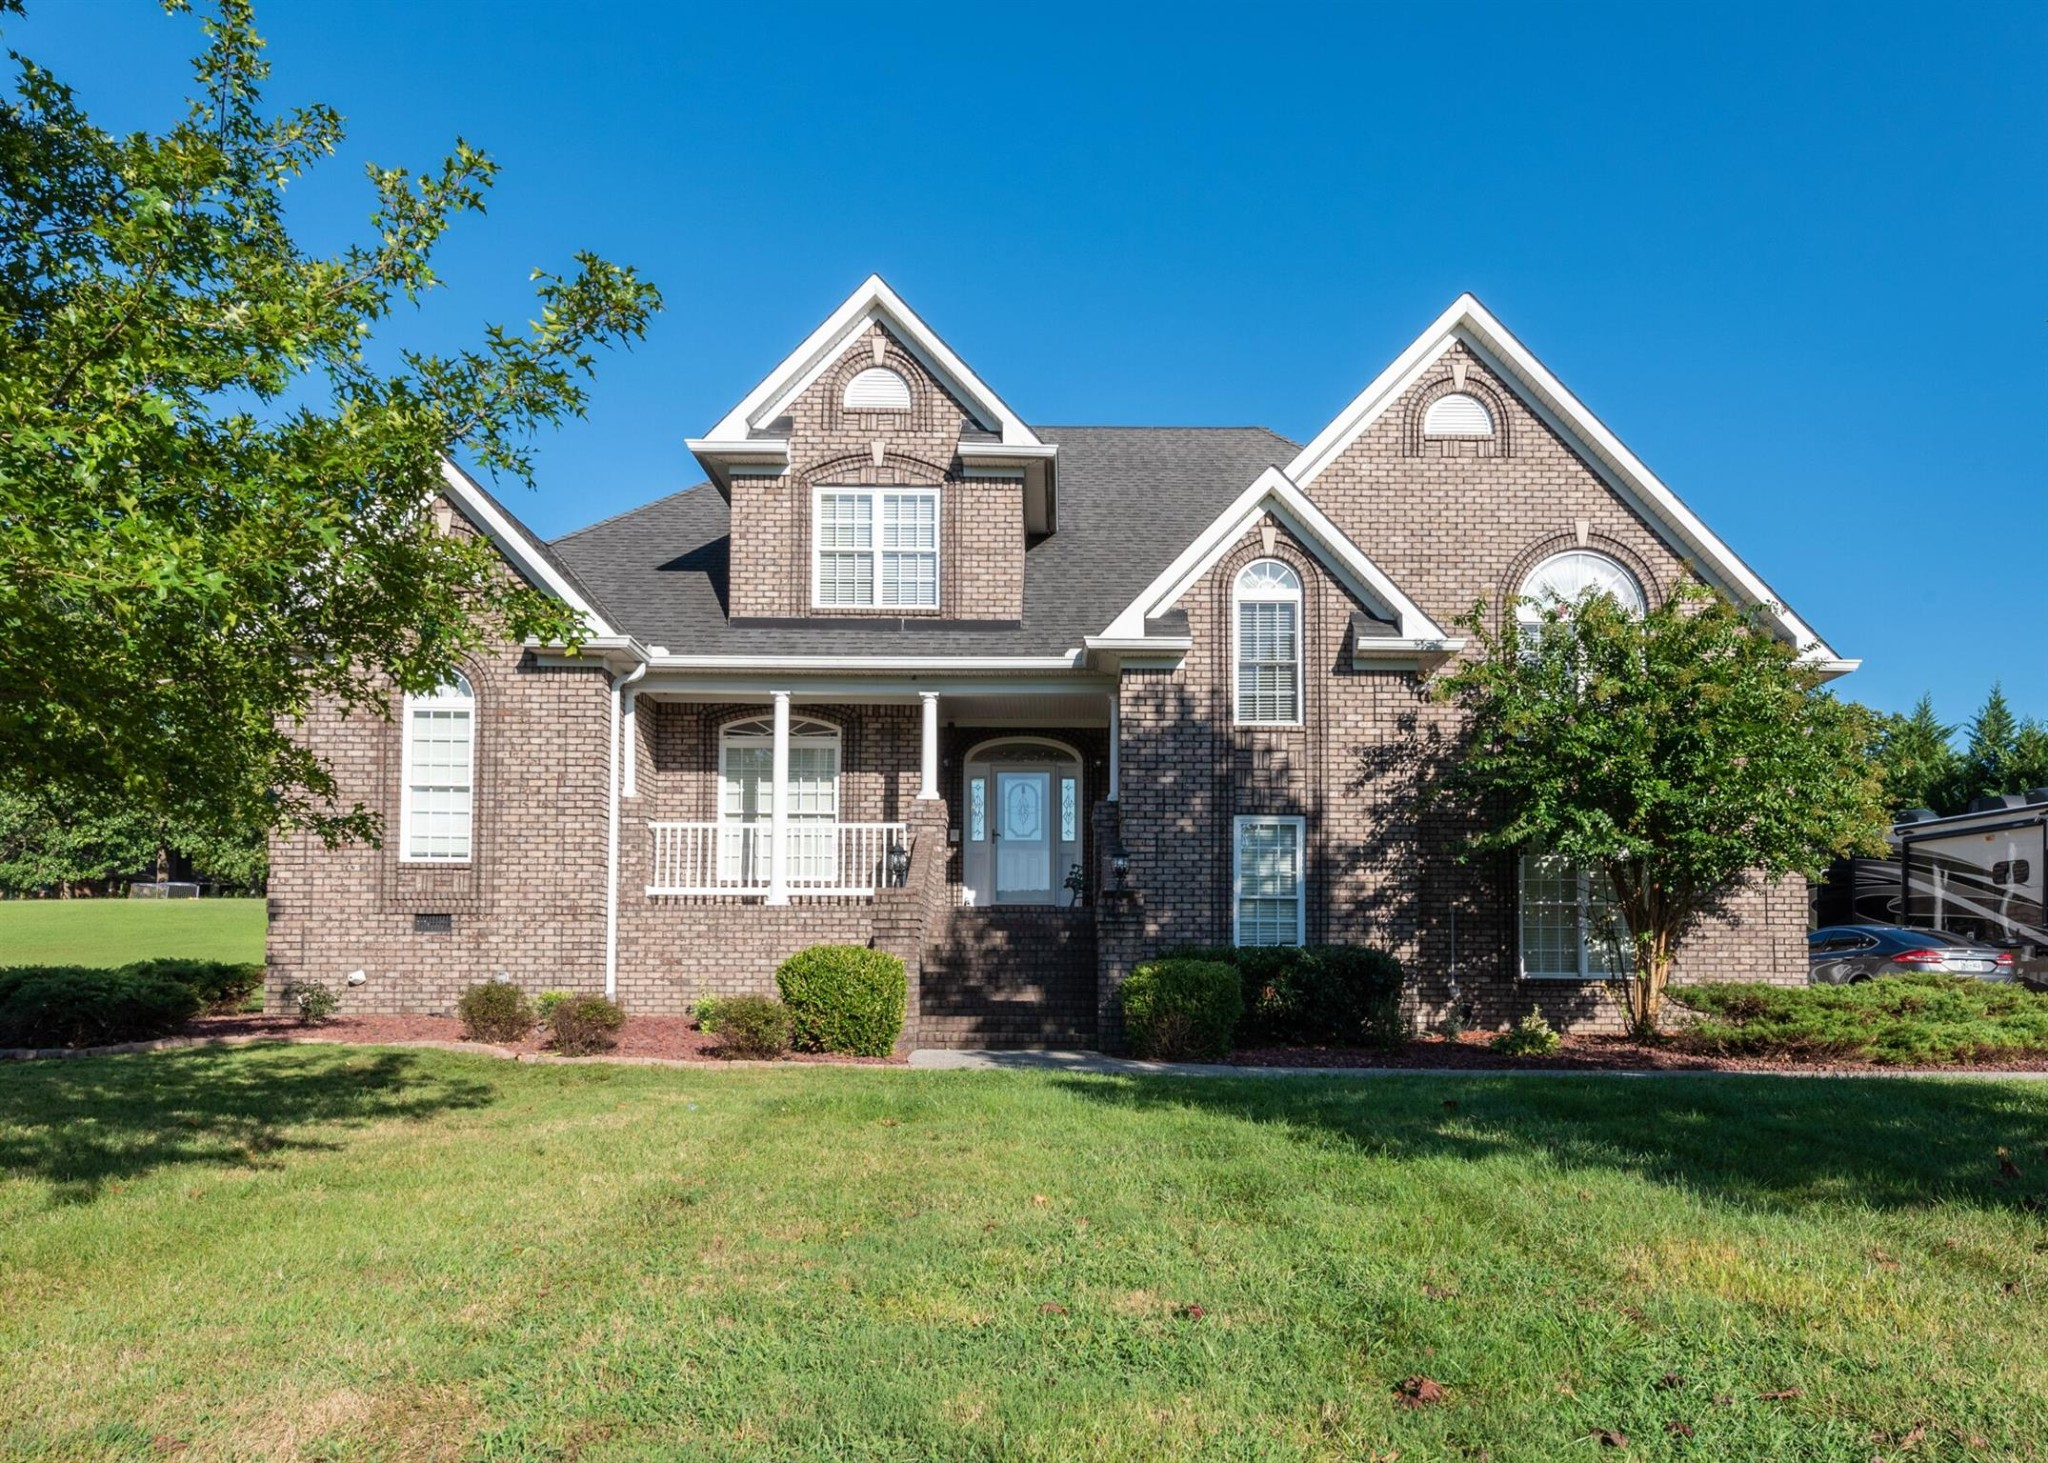 1012 Valleydale Ave, Cross Plains, TN 37049 - Cross Plains, TN real estate listing